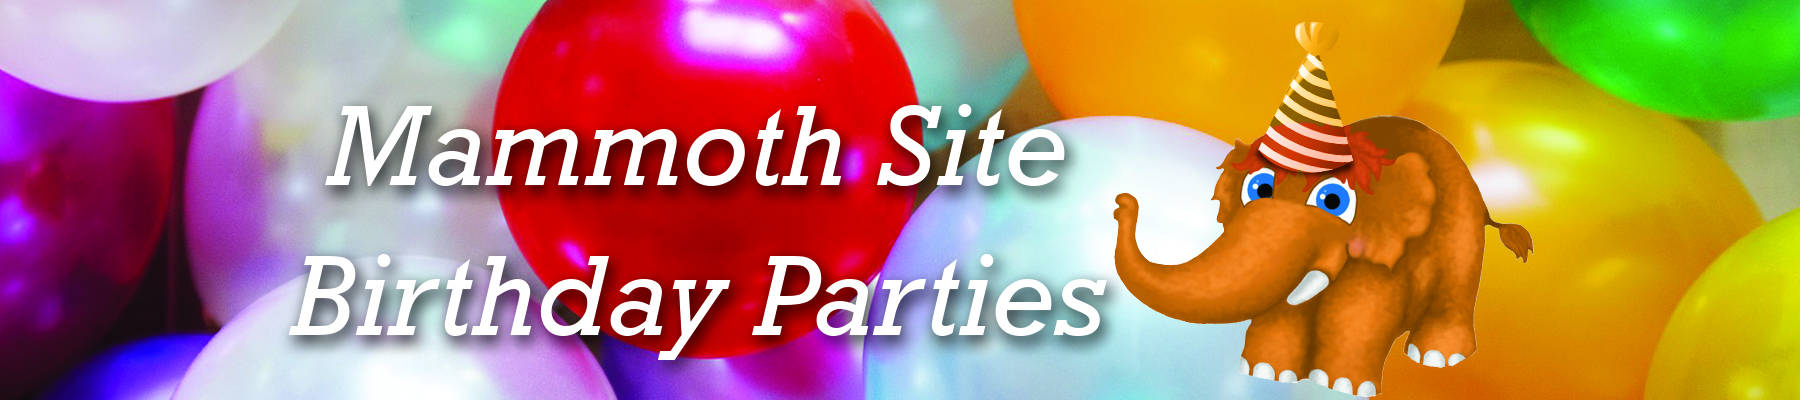 Mammoth Site Birthday Parties Graphic